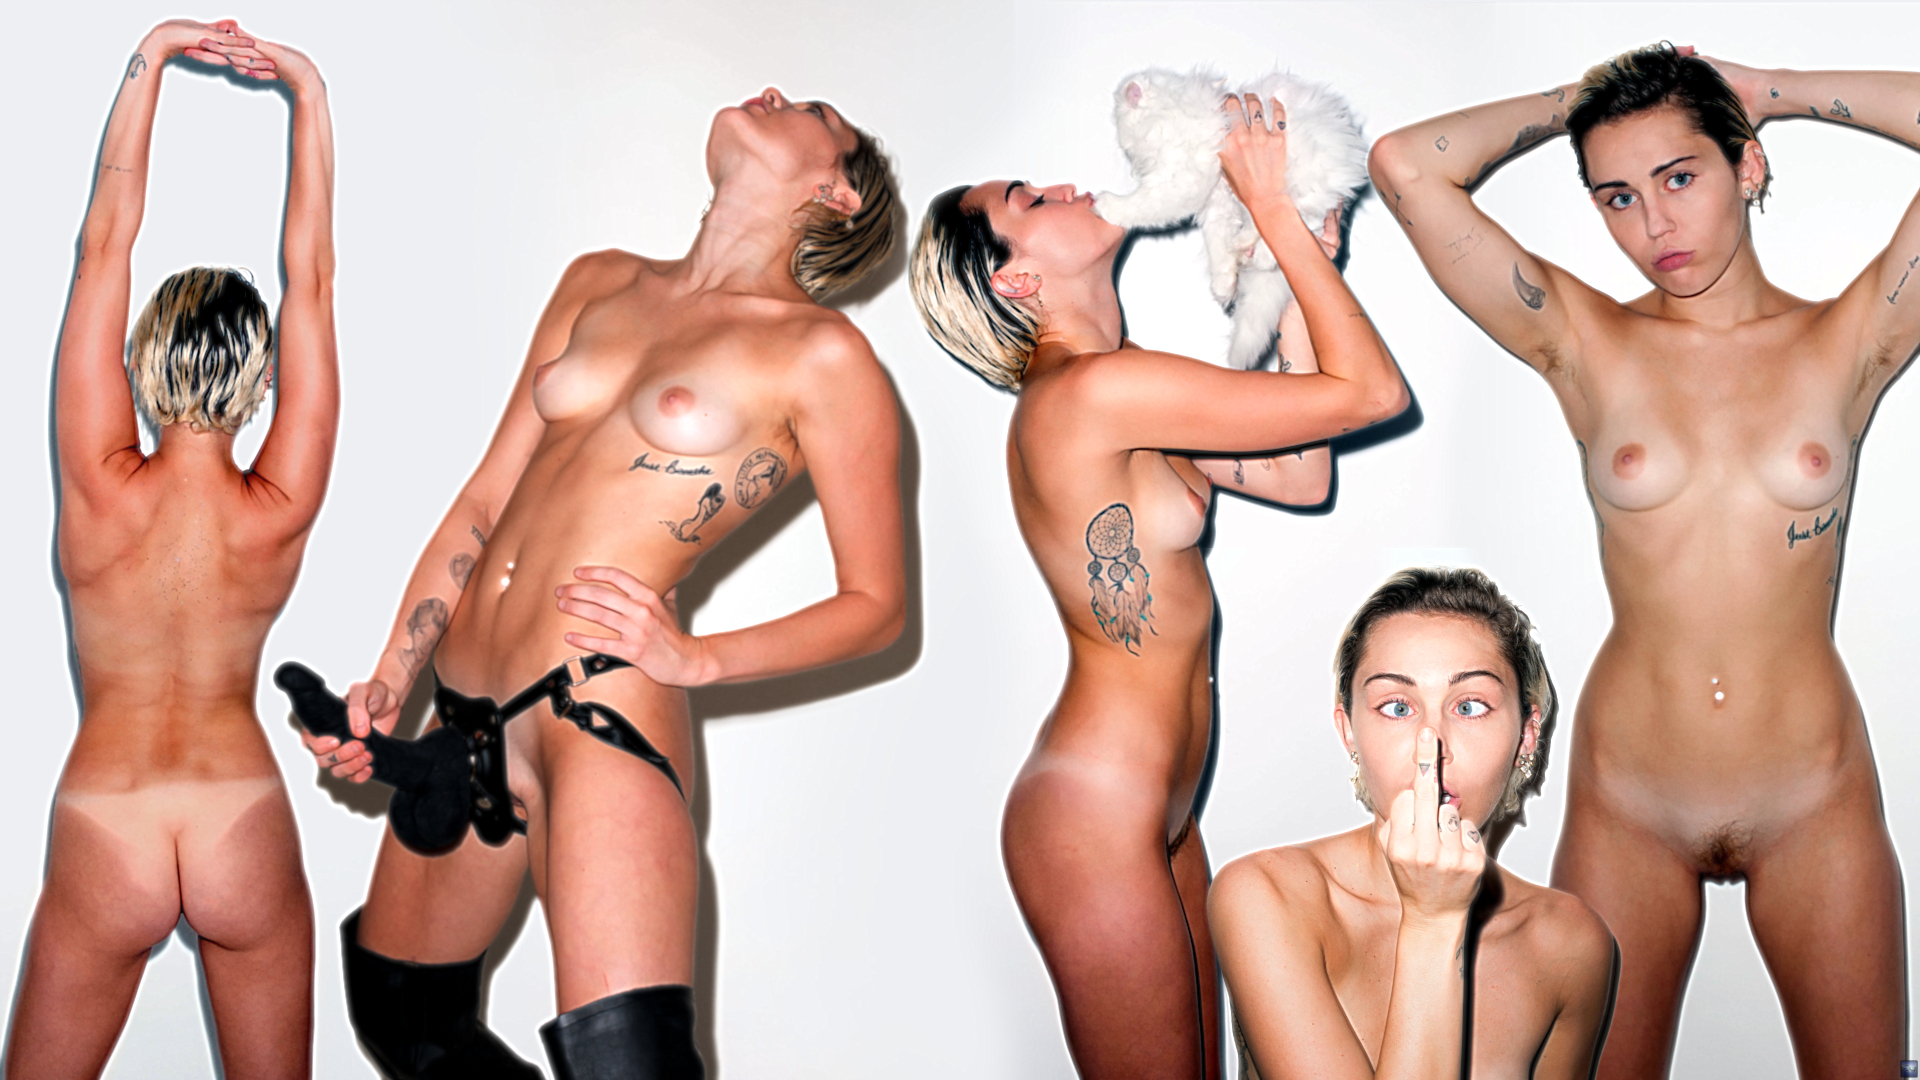 miley cyrus nude photos № 176460